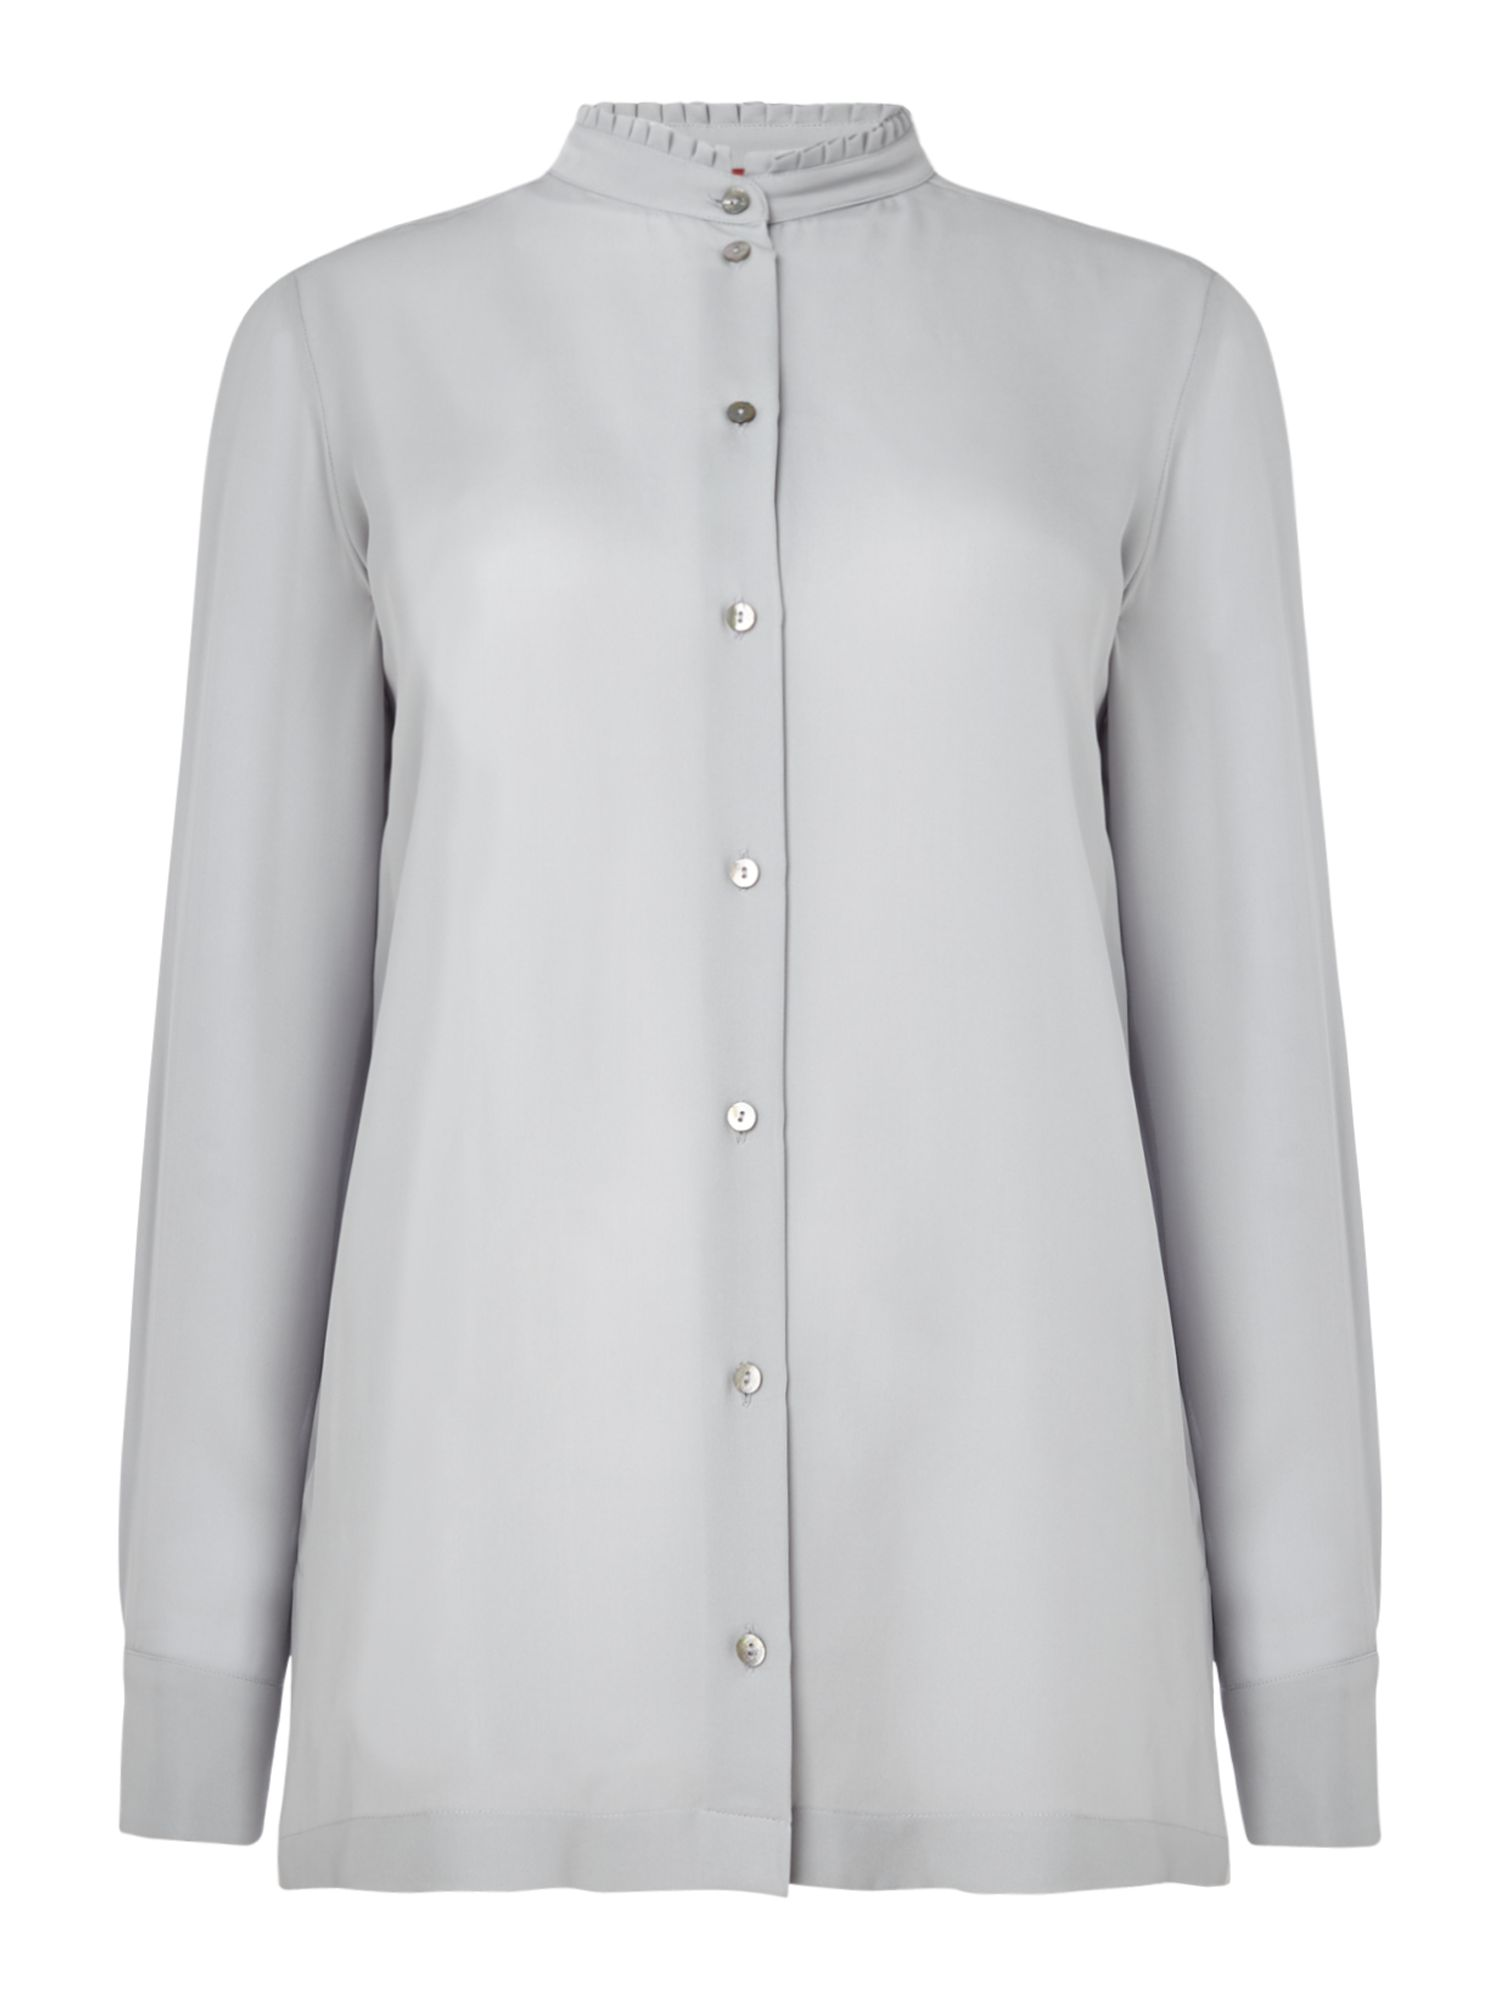 Max Mara Studio Marocco long sleeve frill collar details, Grey